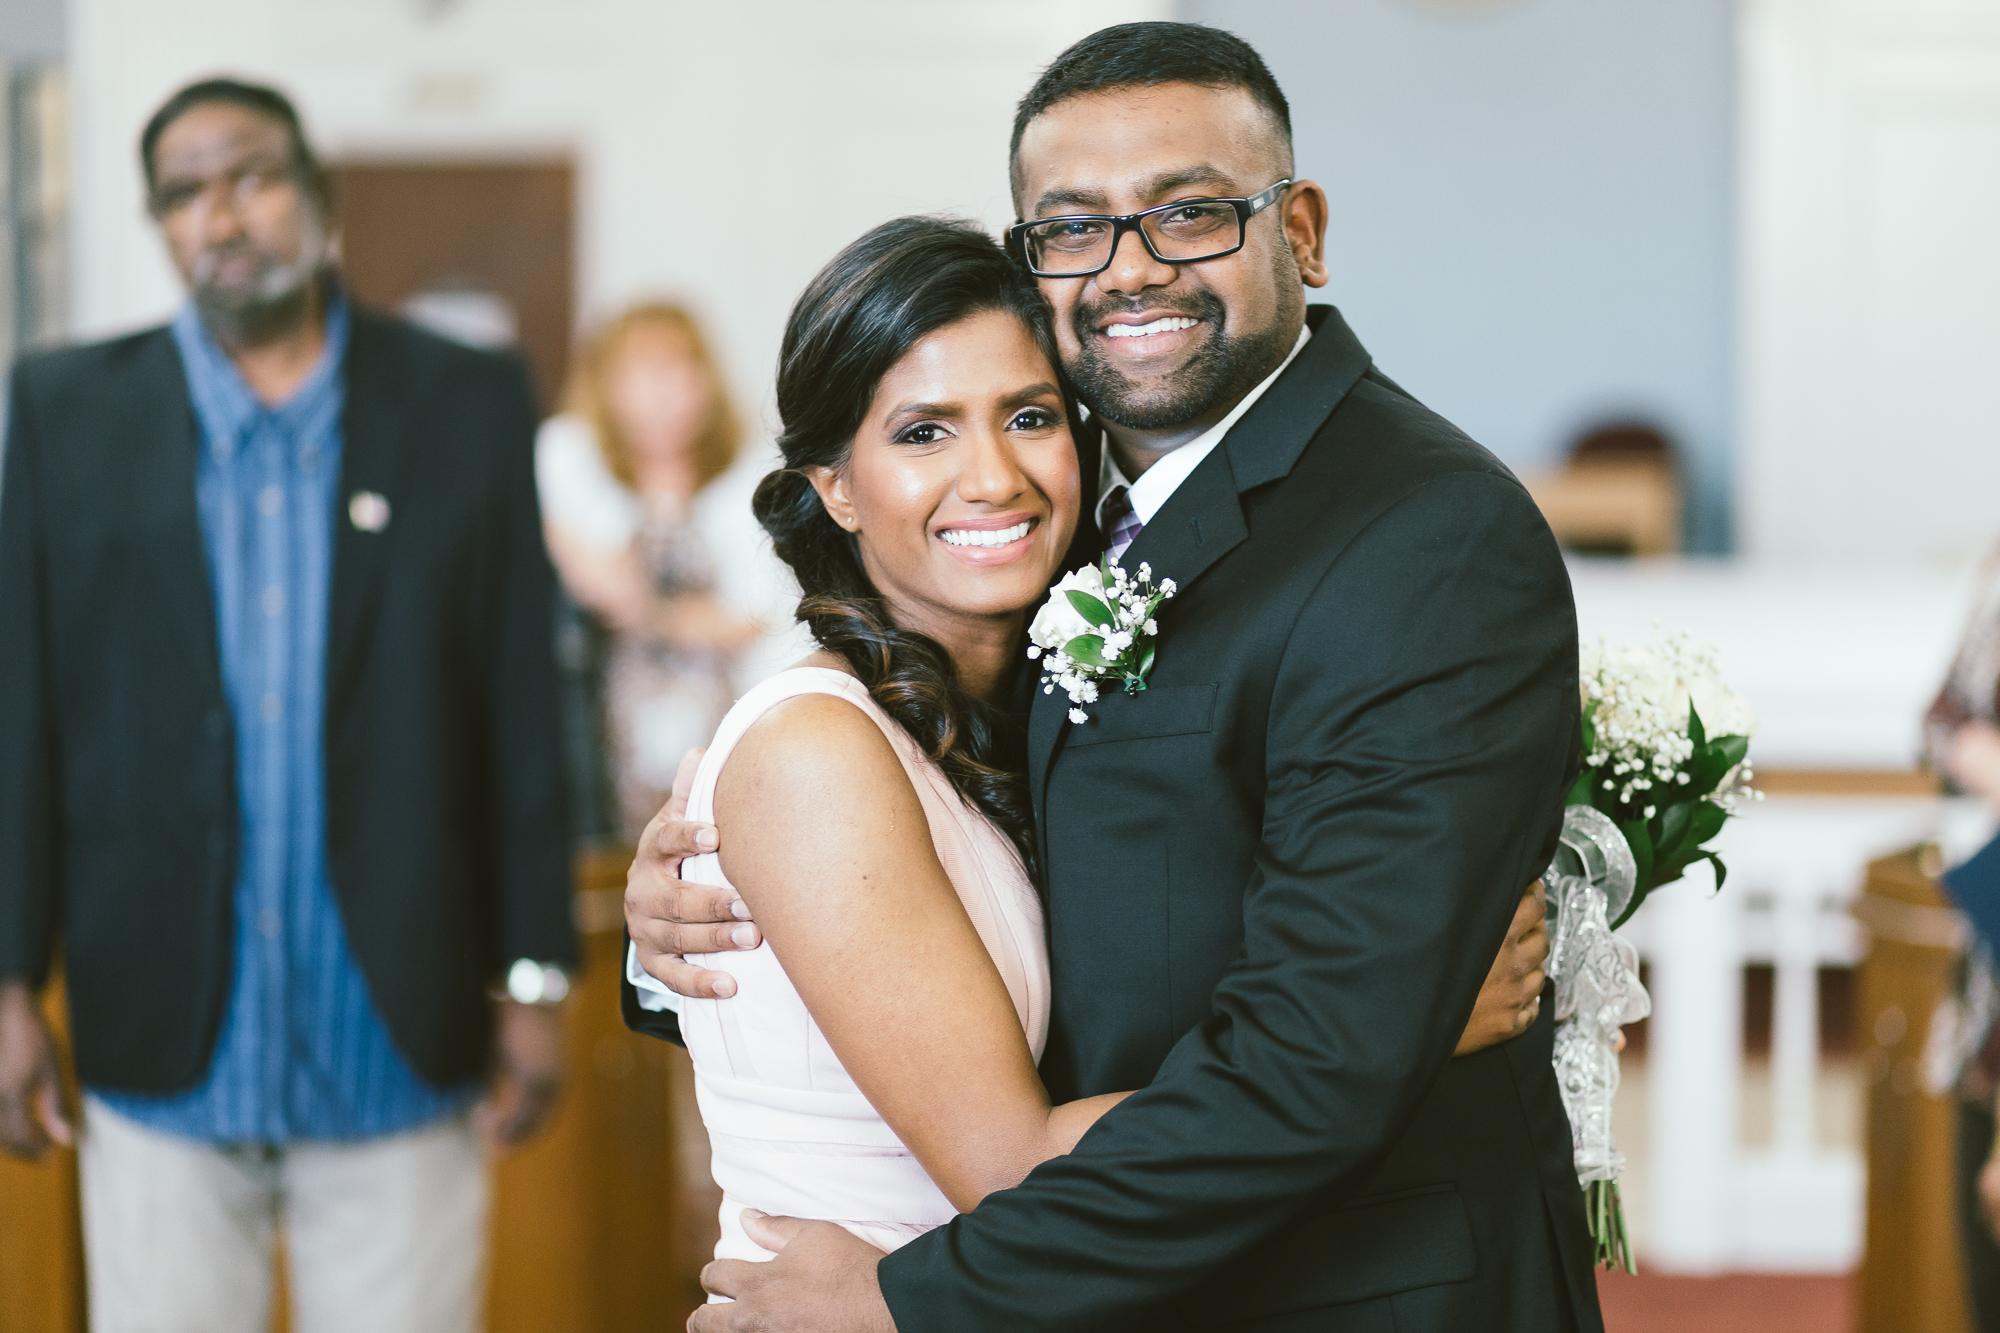 Wedding, Nashua NH - Yogi: Great photographer! Hired him last minute and he showed up on time, did an excellent job. Will hire him again for my next event.